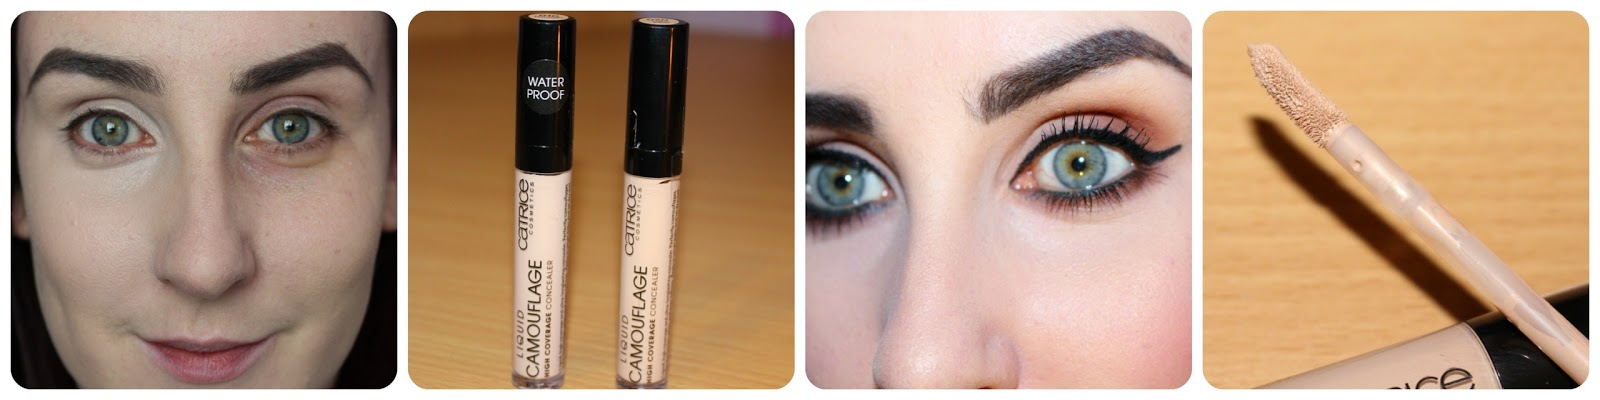 Catrice Liquid Camouflage Concealer Review